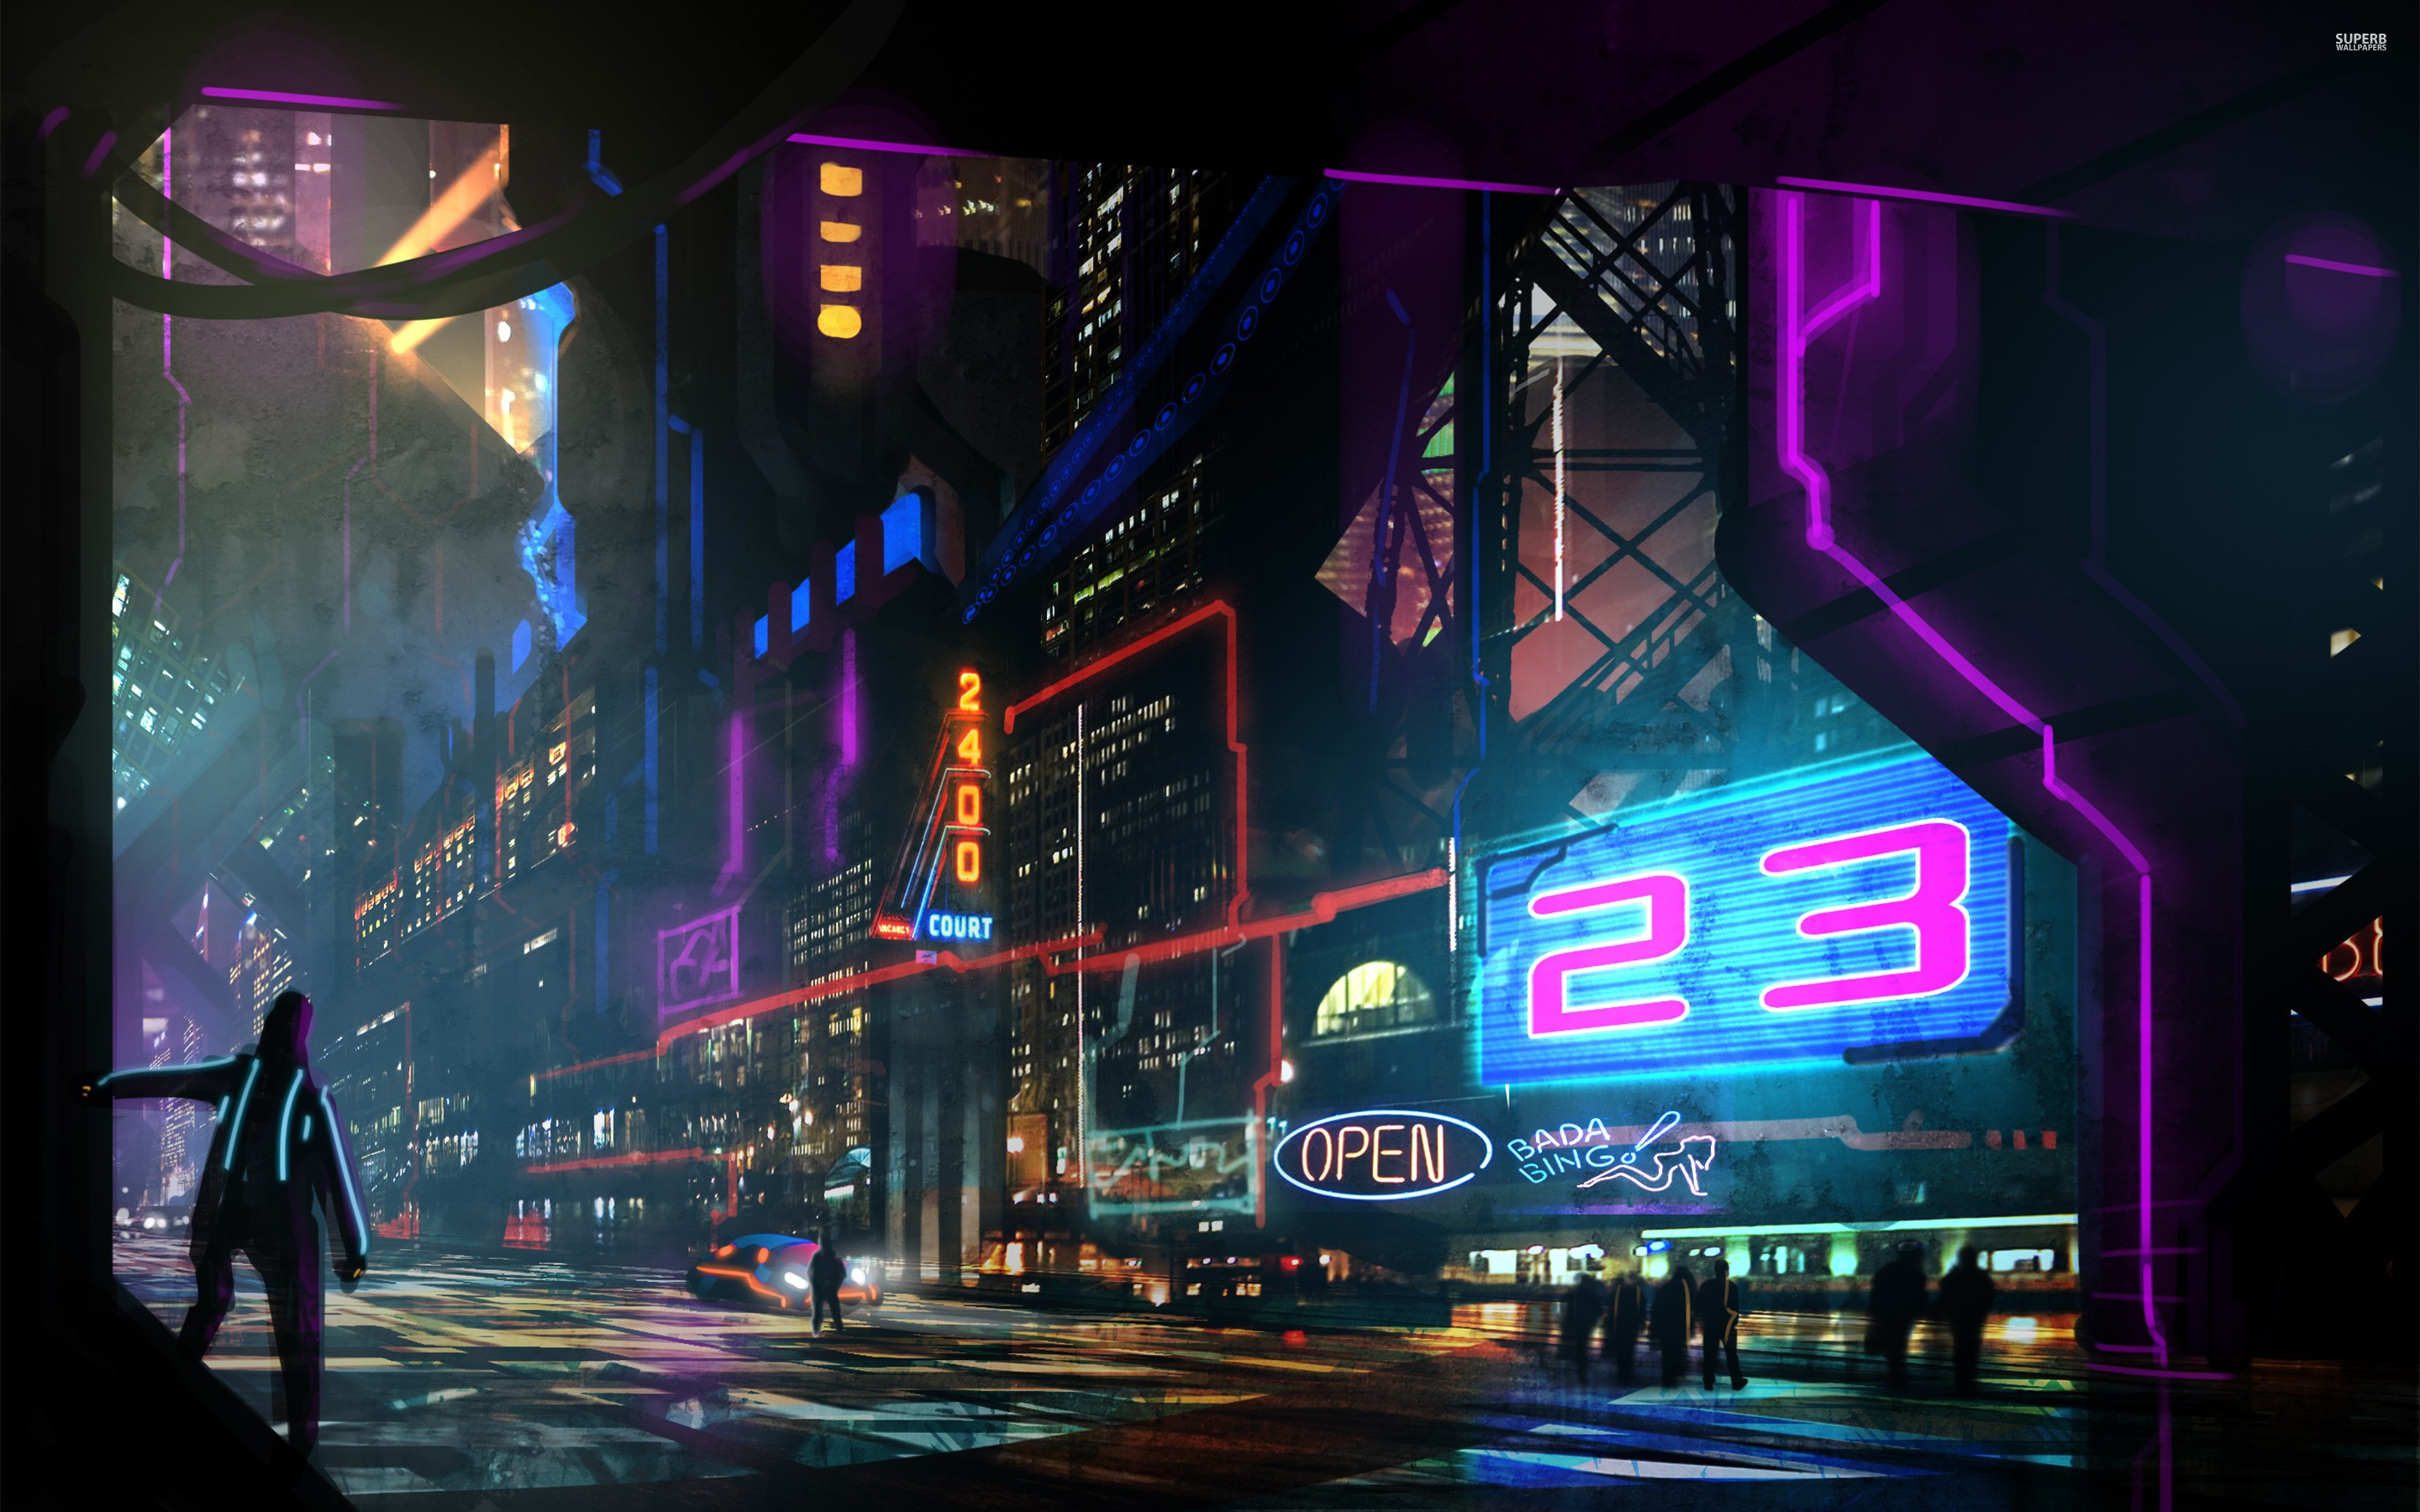 All Car Hd Wallpaper Download Wallpaper Night Cyberpunk Neon Sign Disco Stage